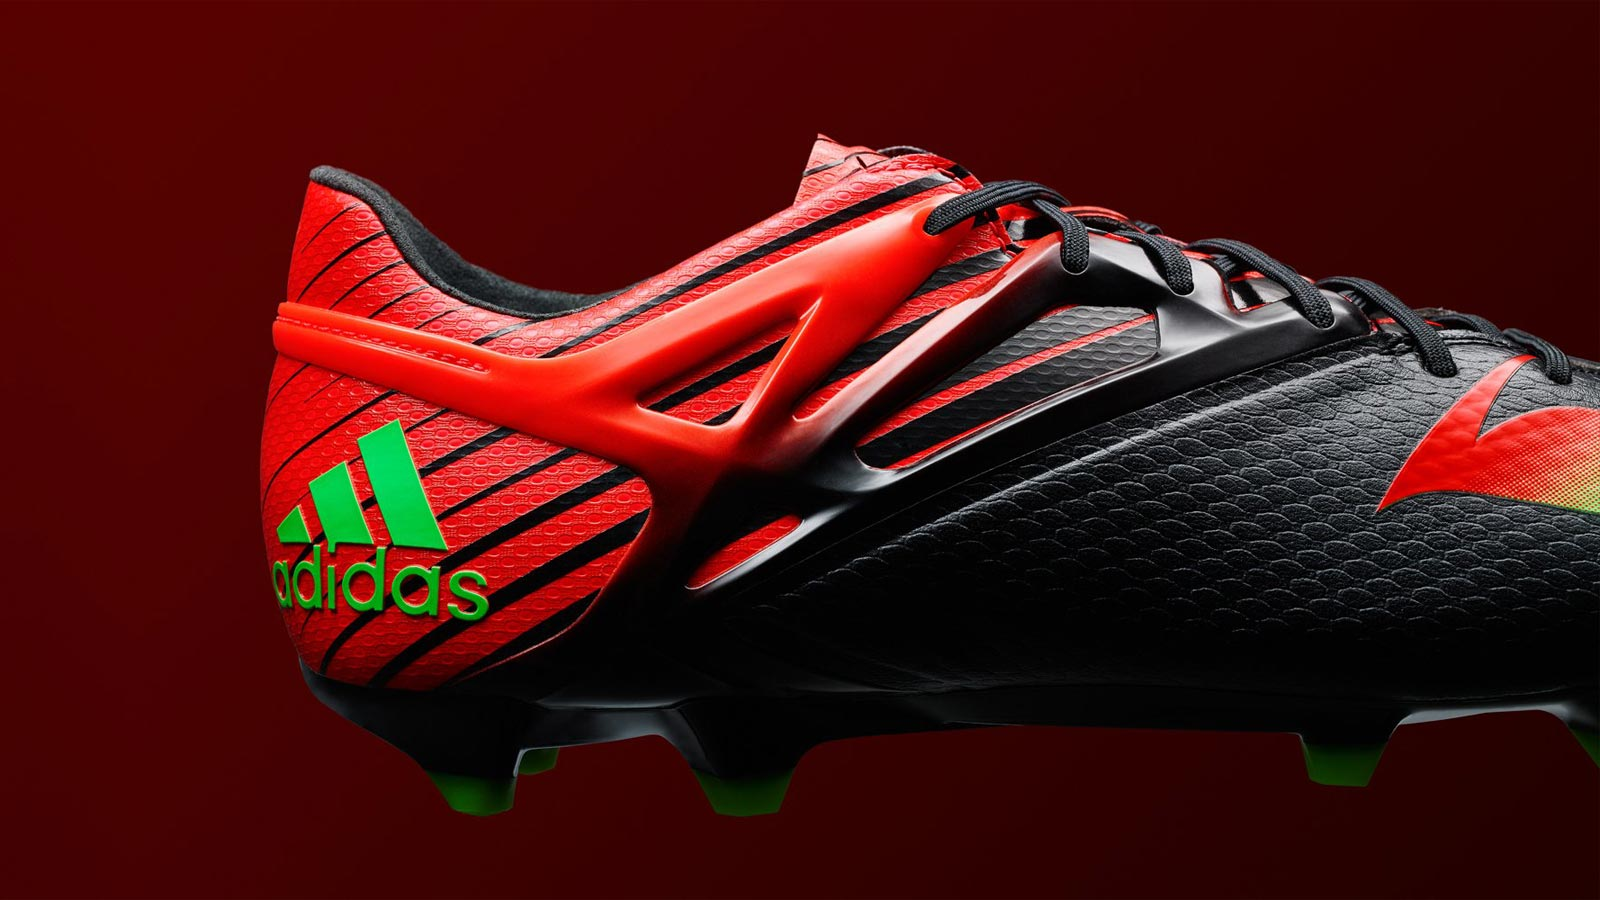 0299810c501ca The new black red Adidas Messi 2015 2016 Football Boot 1600x900